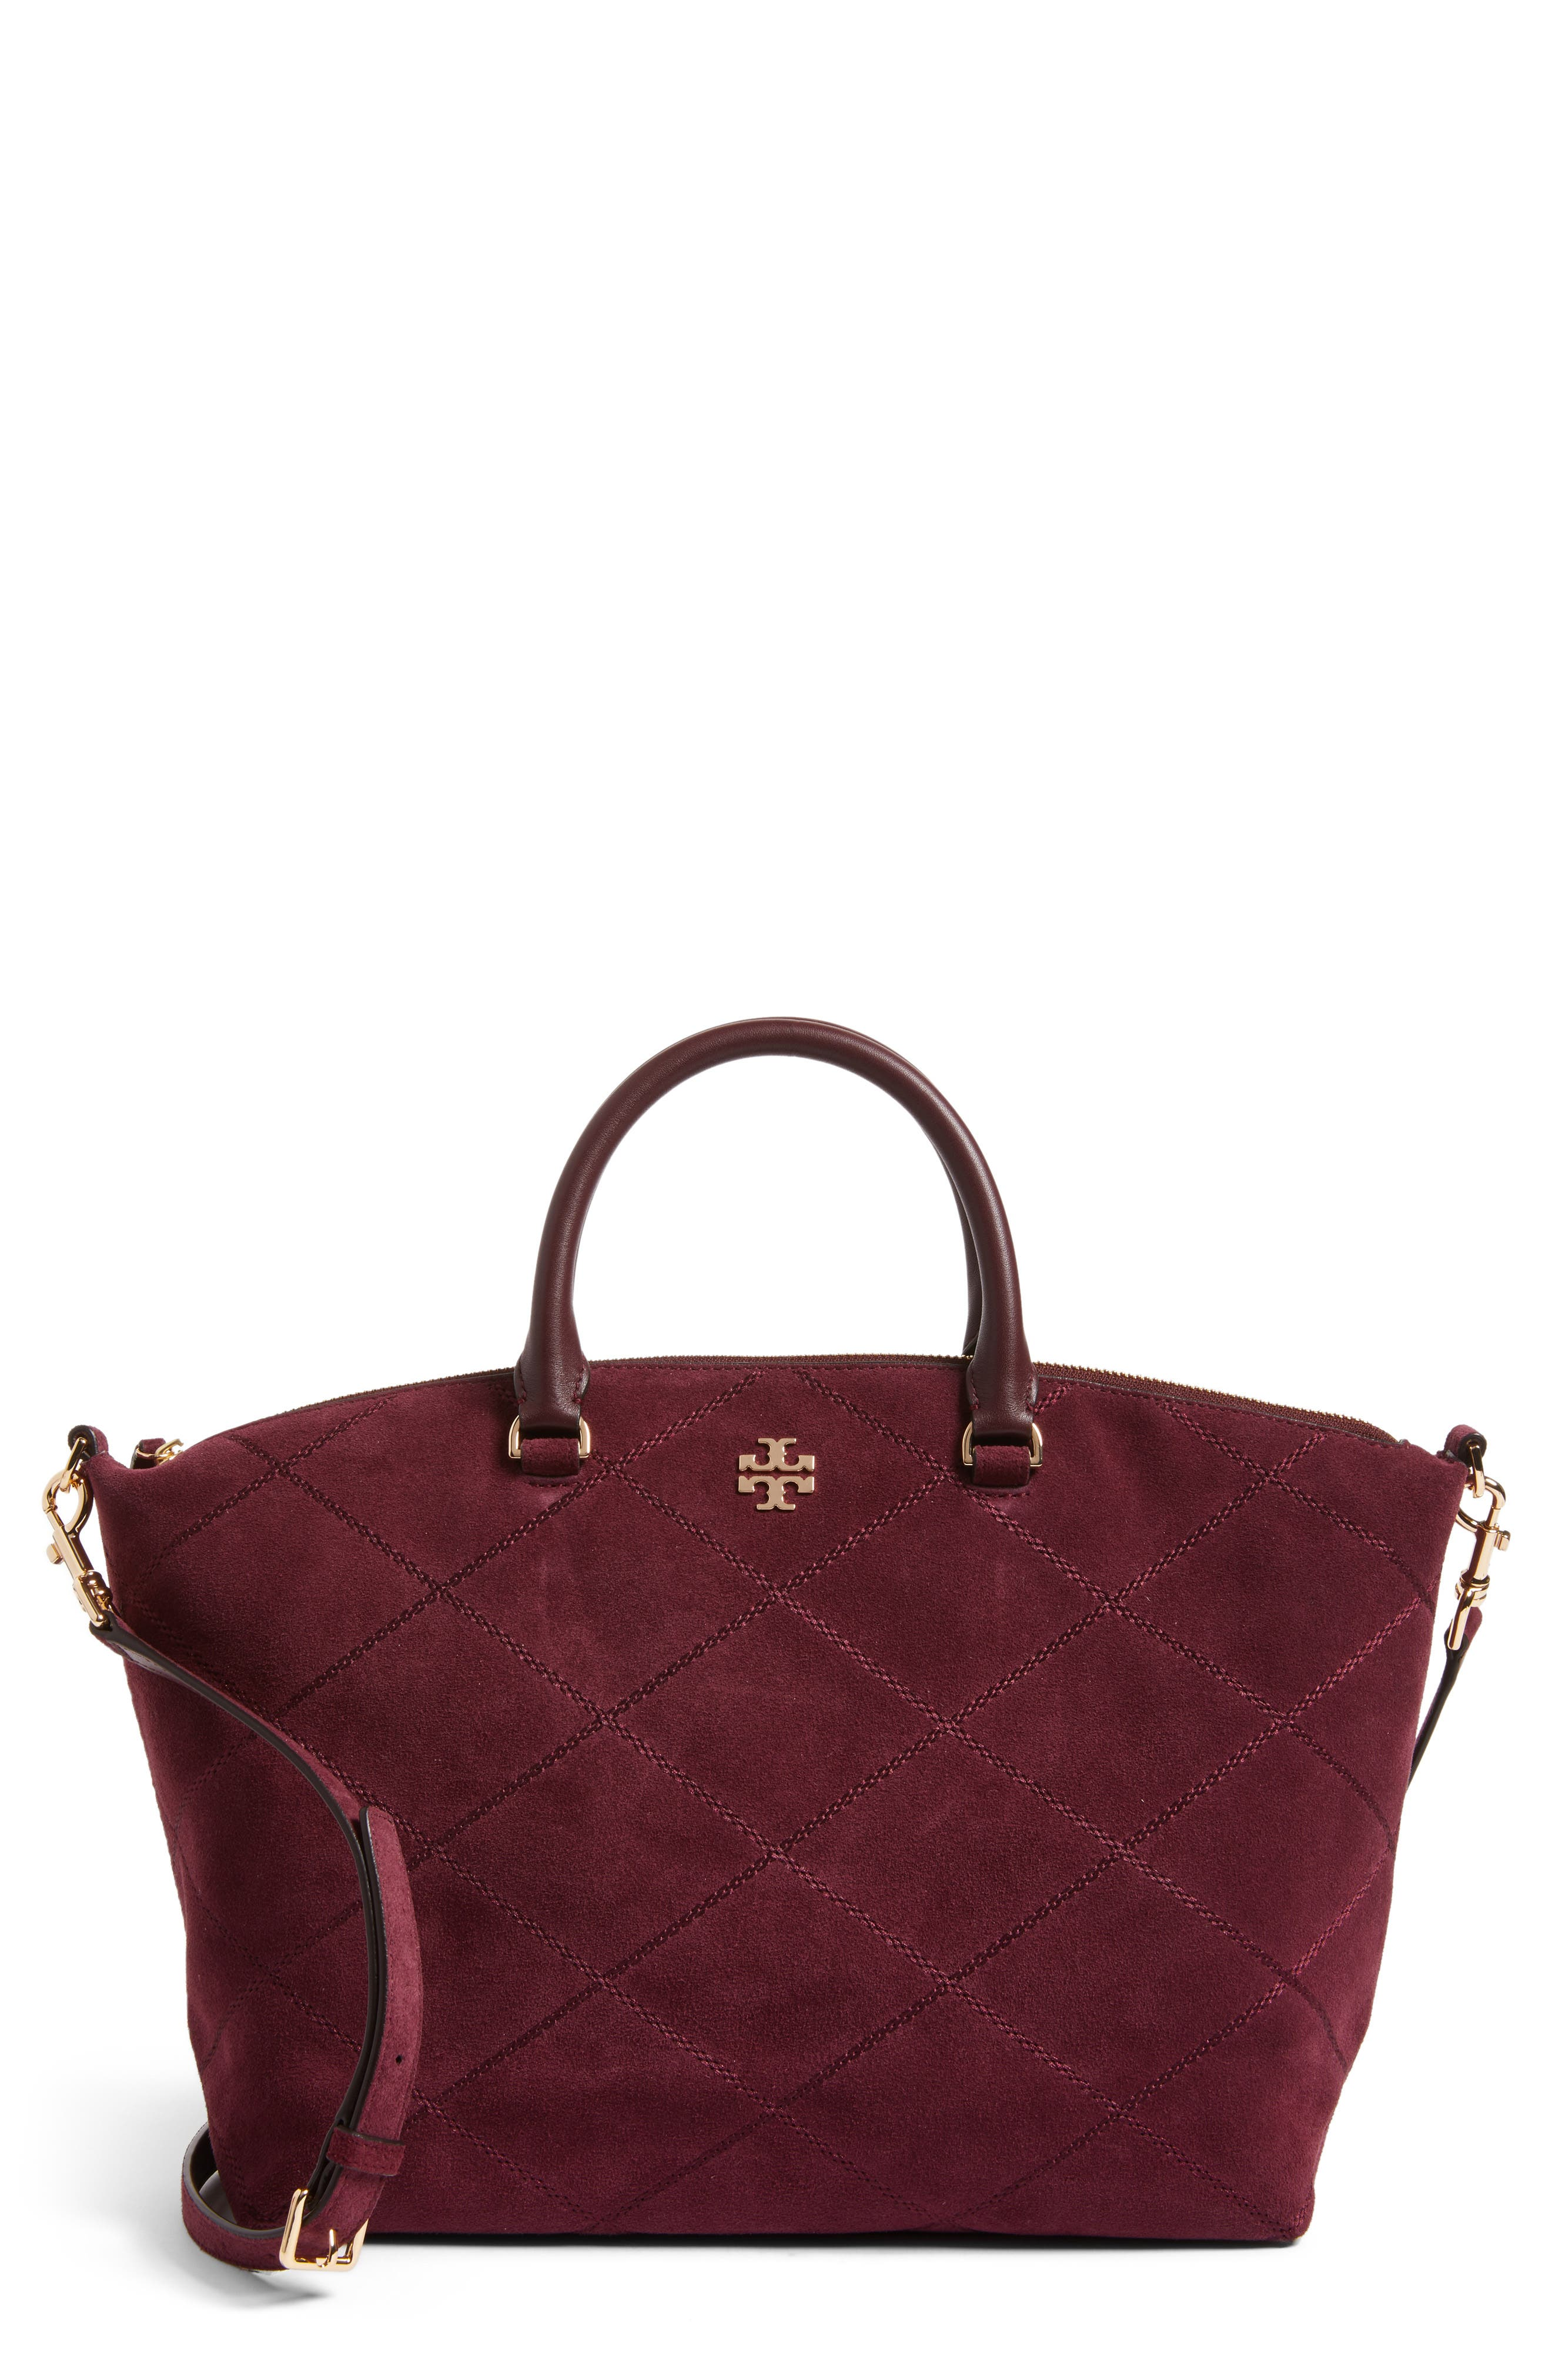 Main Image - Tory Burch Frida Stitched Suede Satchel (Nordstrom Exclusive)